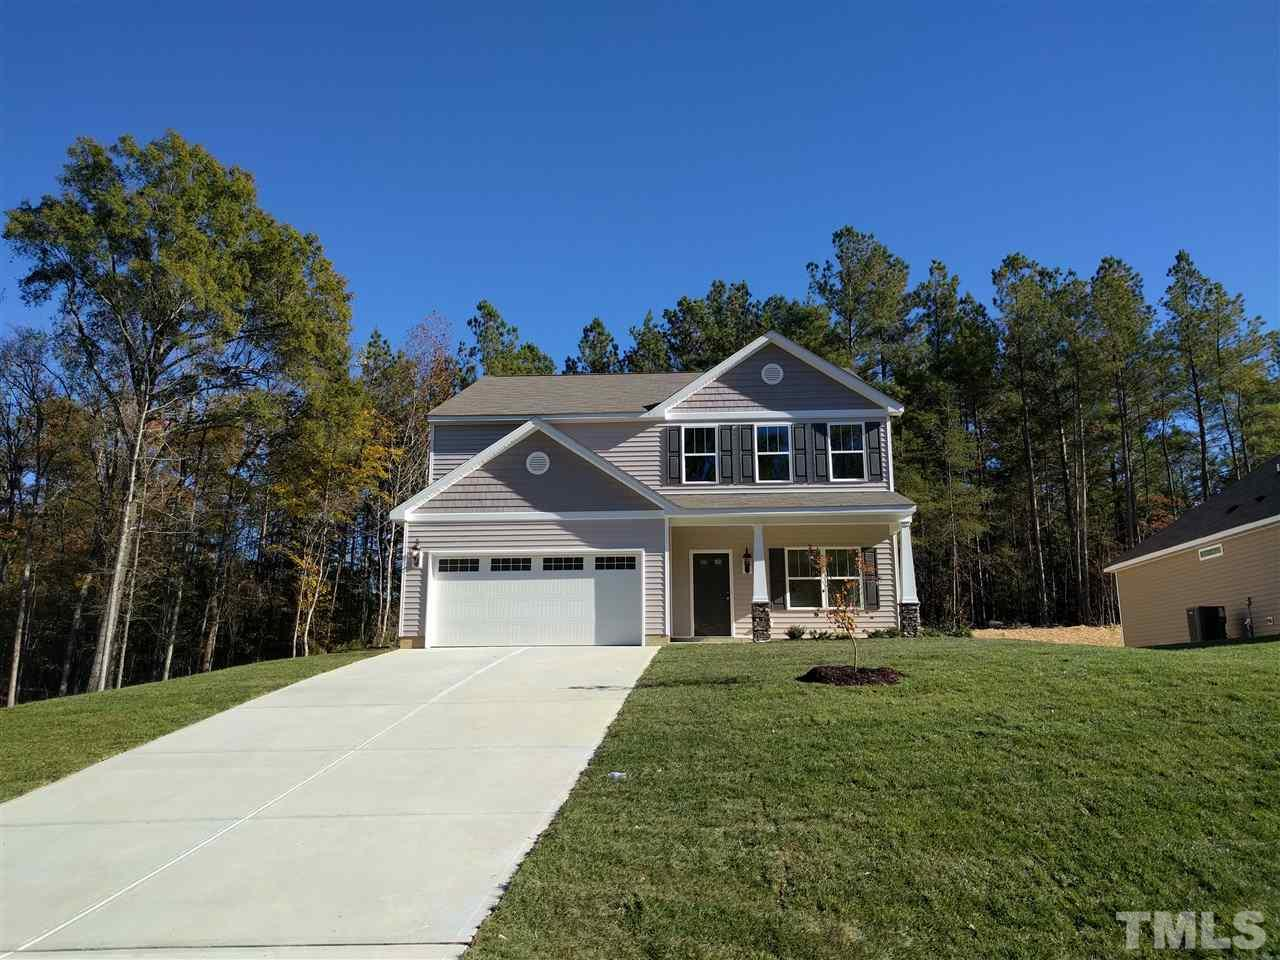 120 Richmond Run (Lot 121), Stem, NC 27581